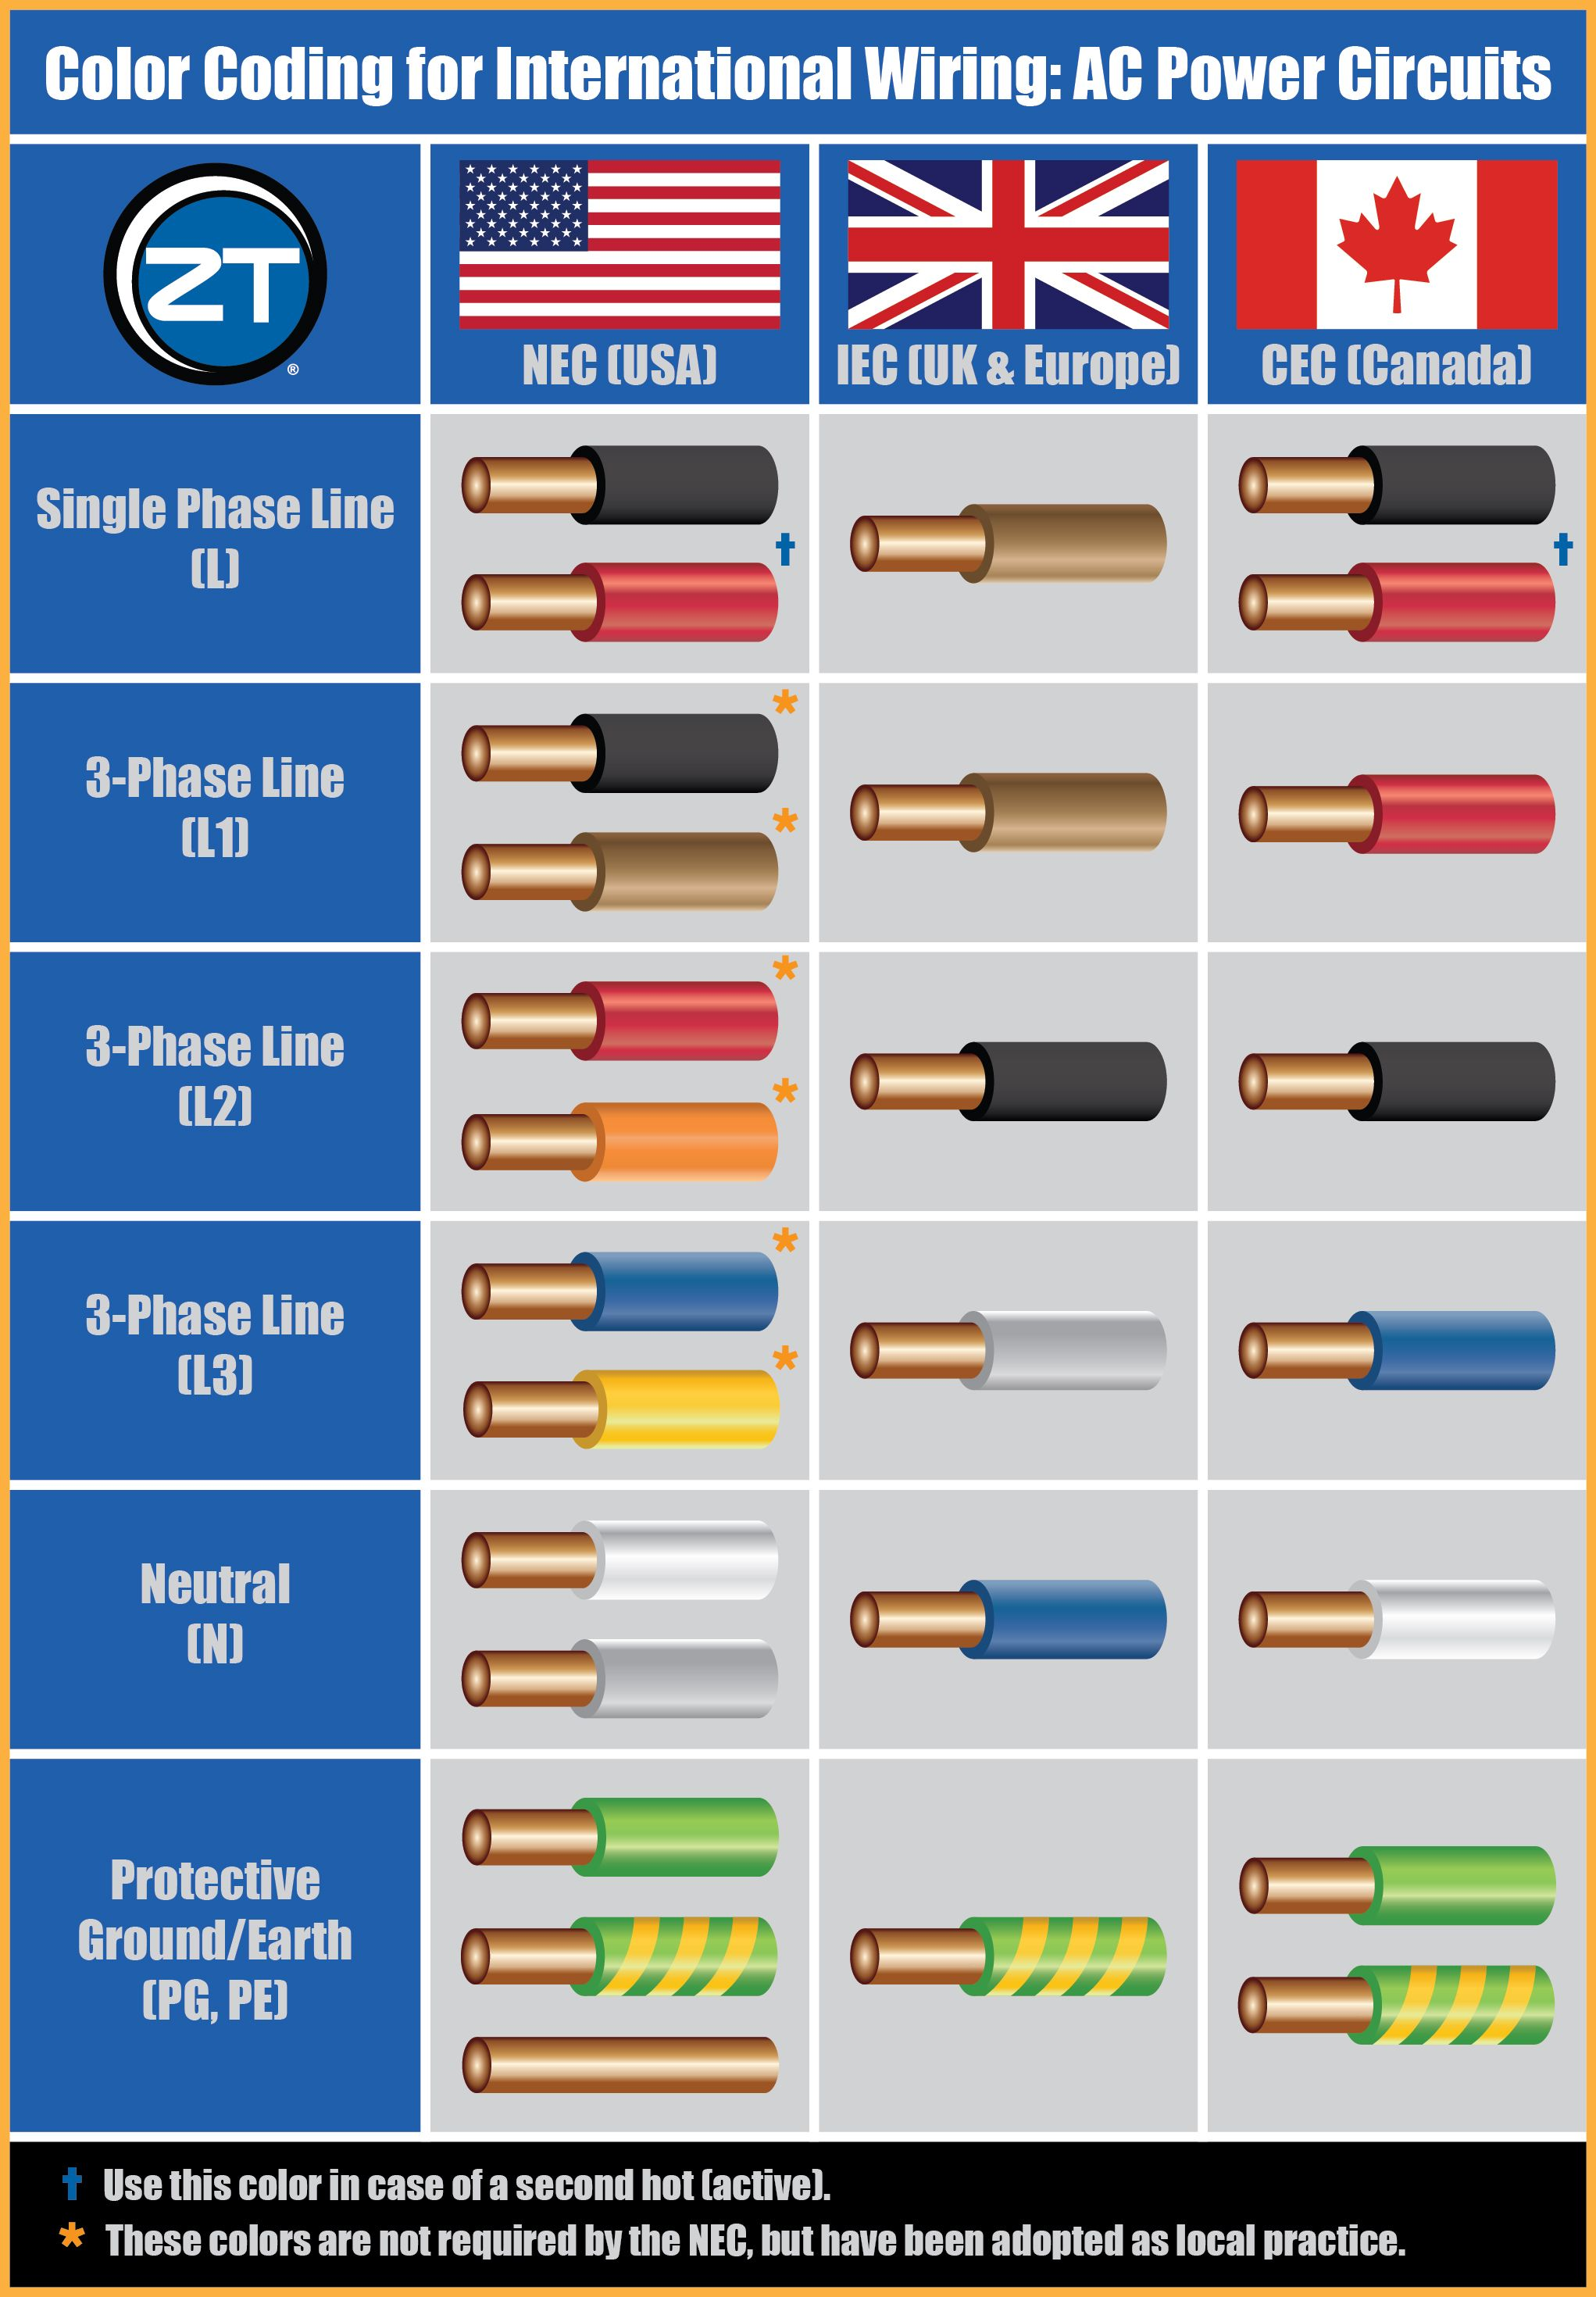 ac wiring color code wiring diagram expert wire color coding canada guide to color coding for [ 2043 x 2940 Pixel ]